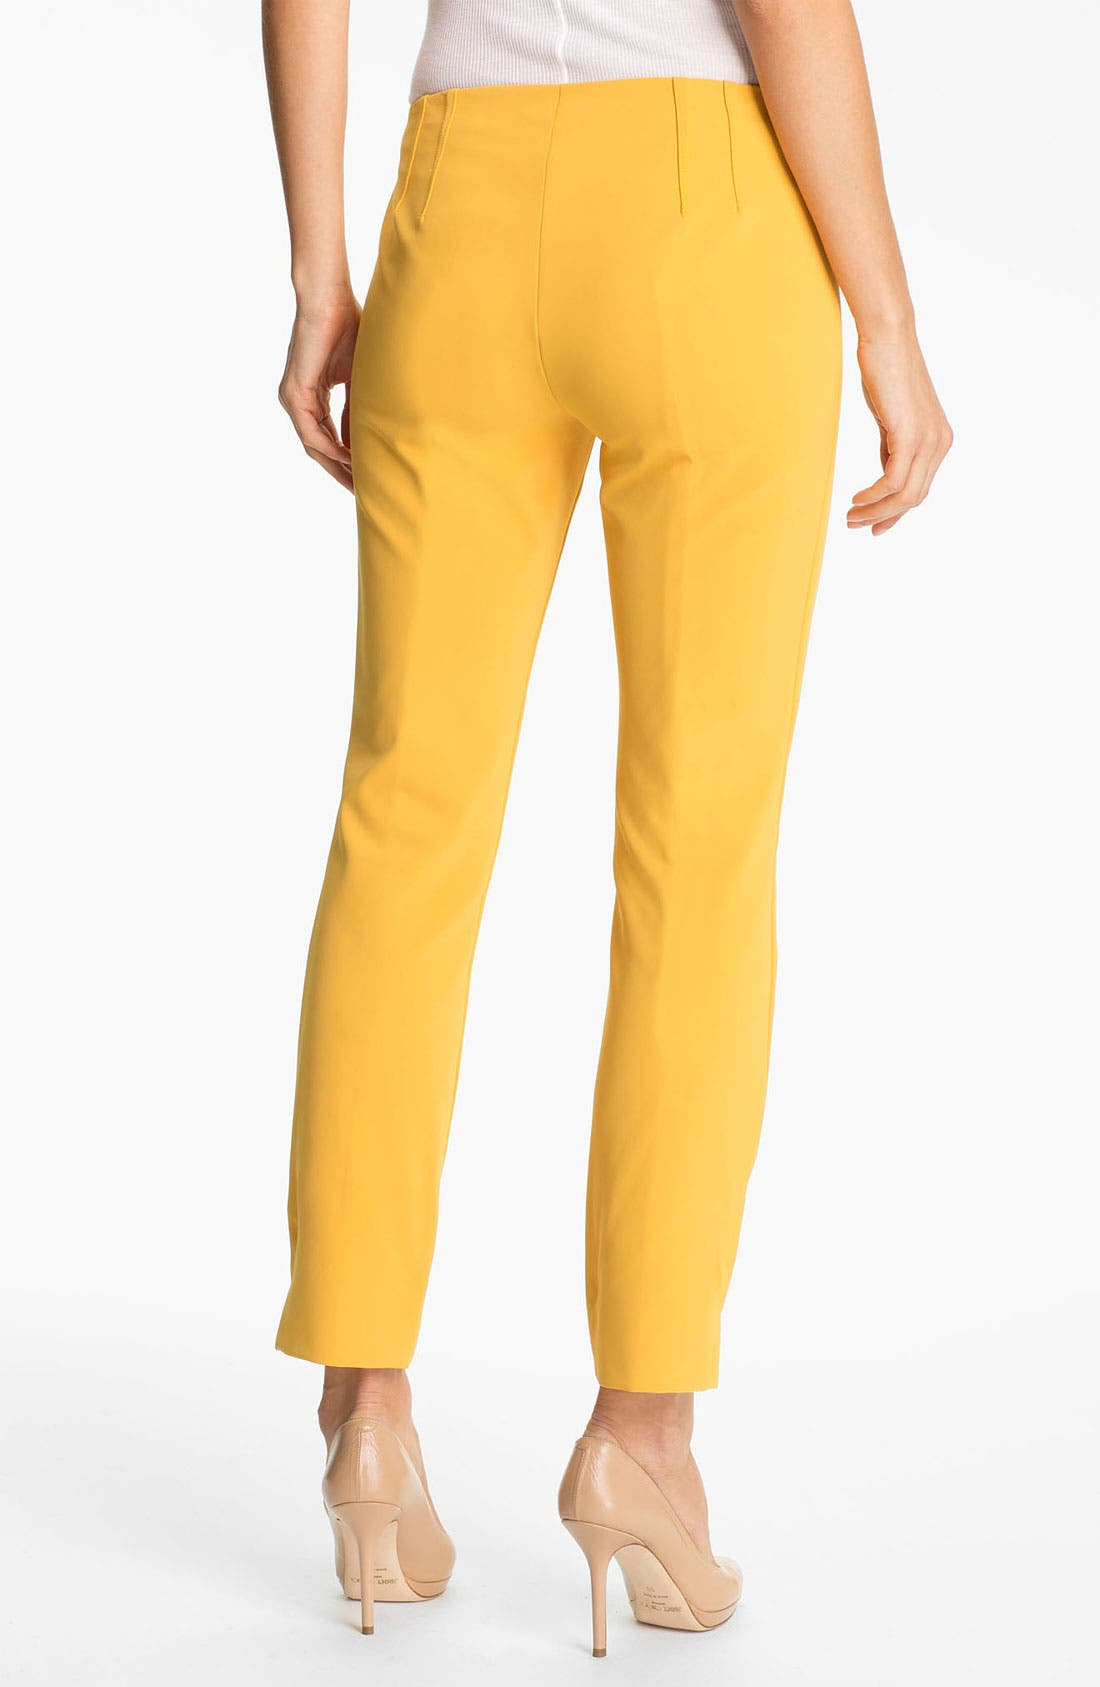 Alternate Image 2  - Theory 'Belisa' Slim Leg Stretch Pants